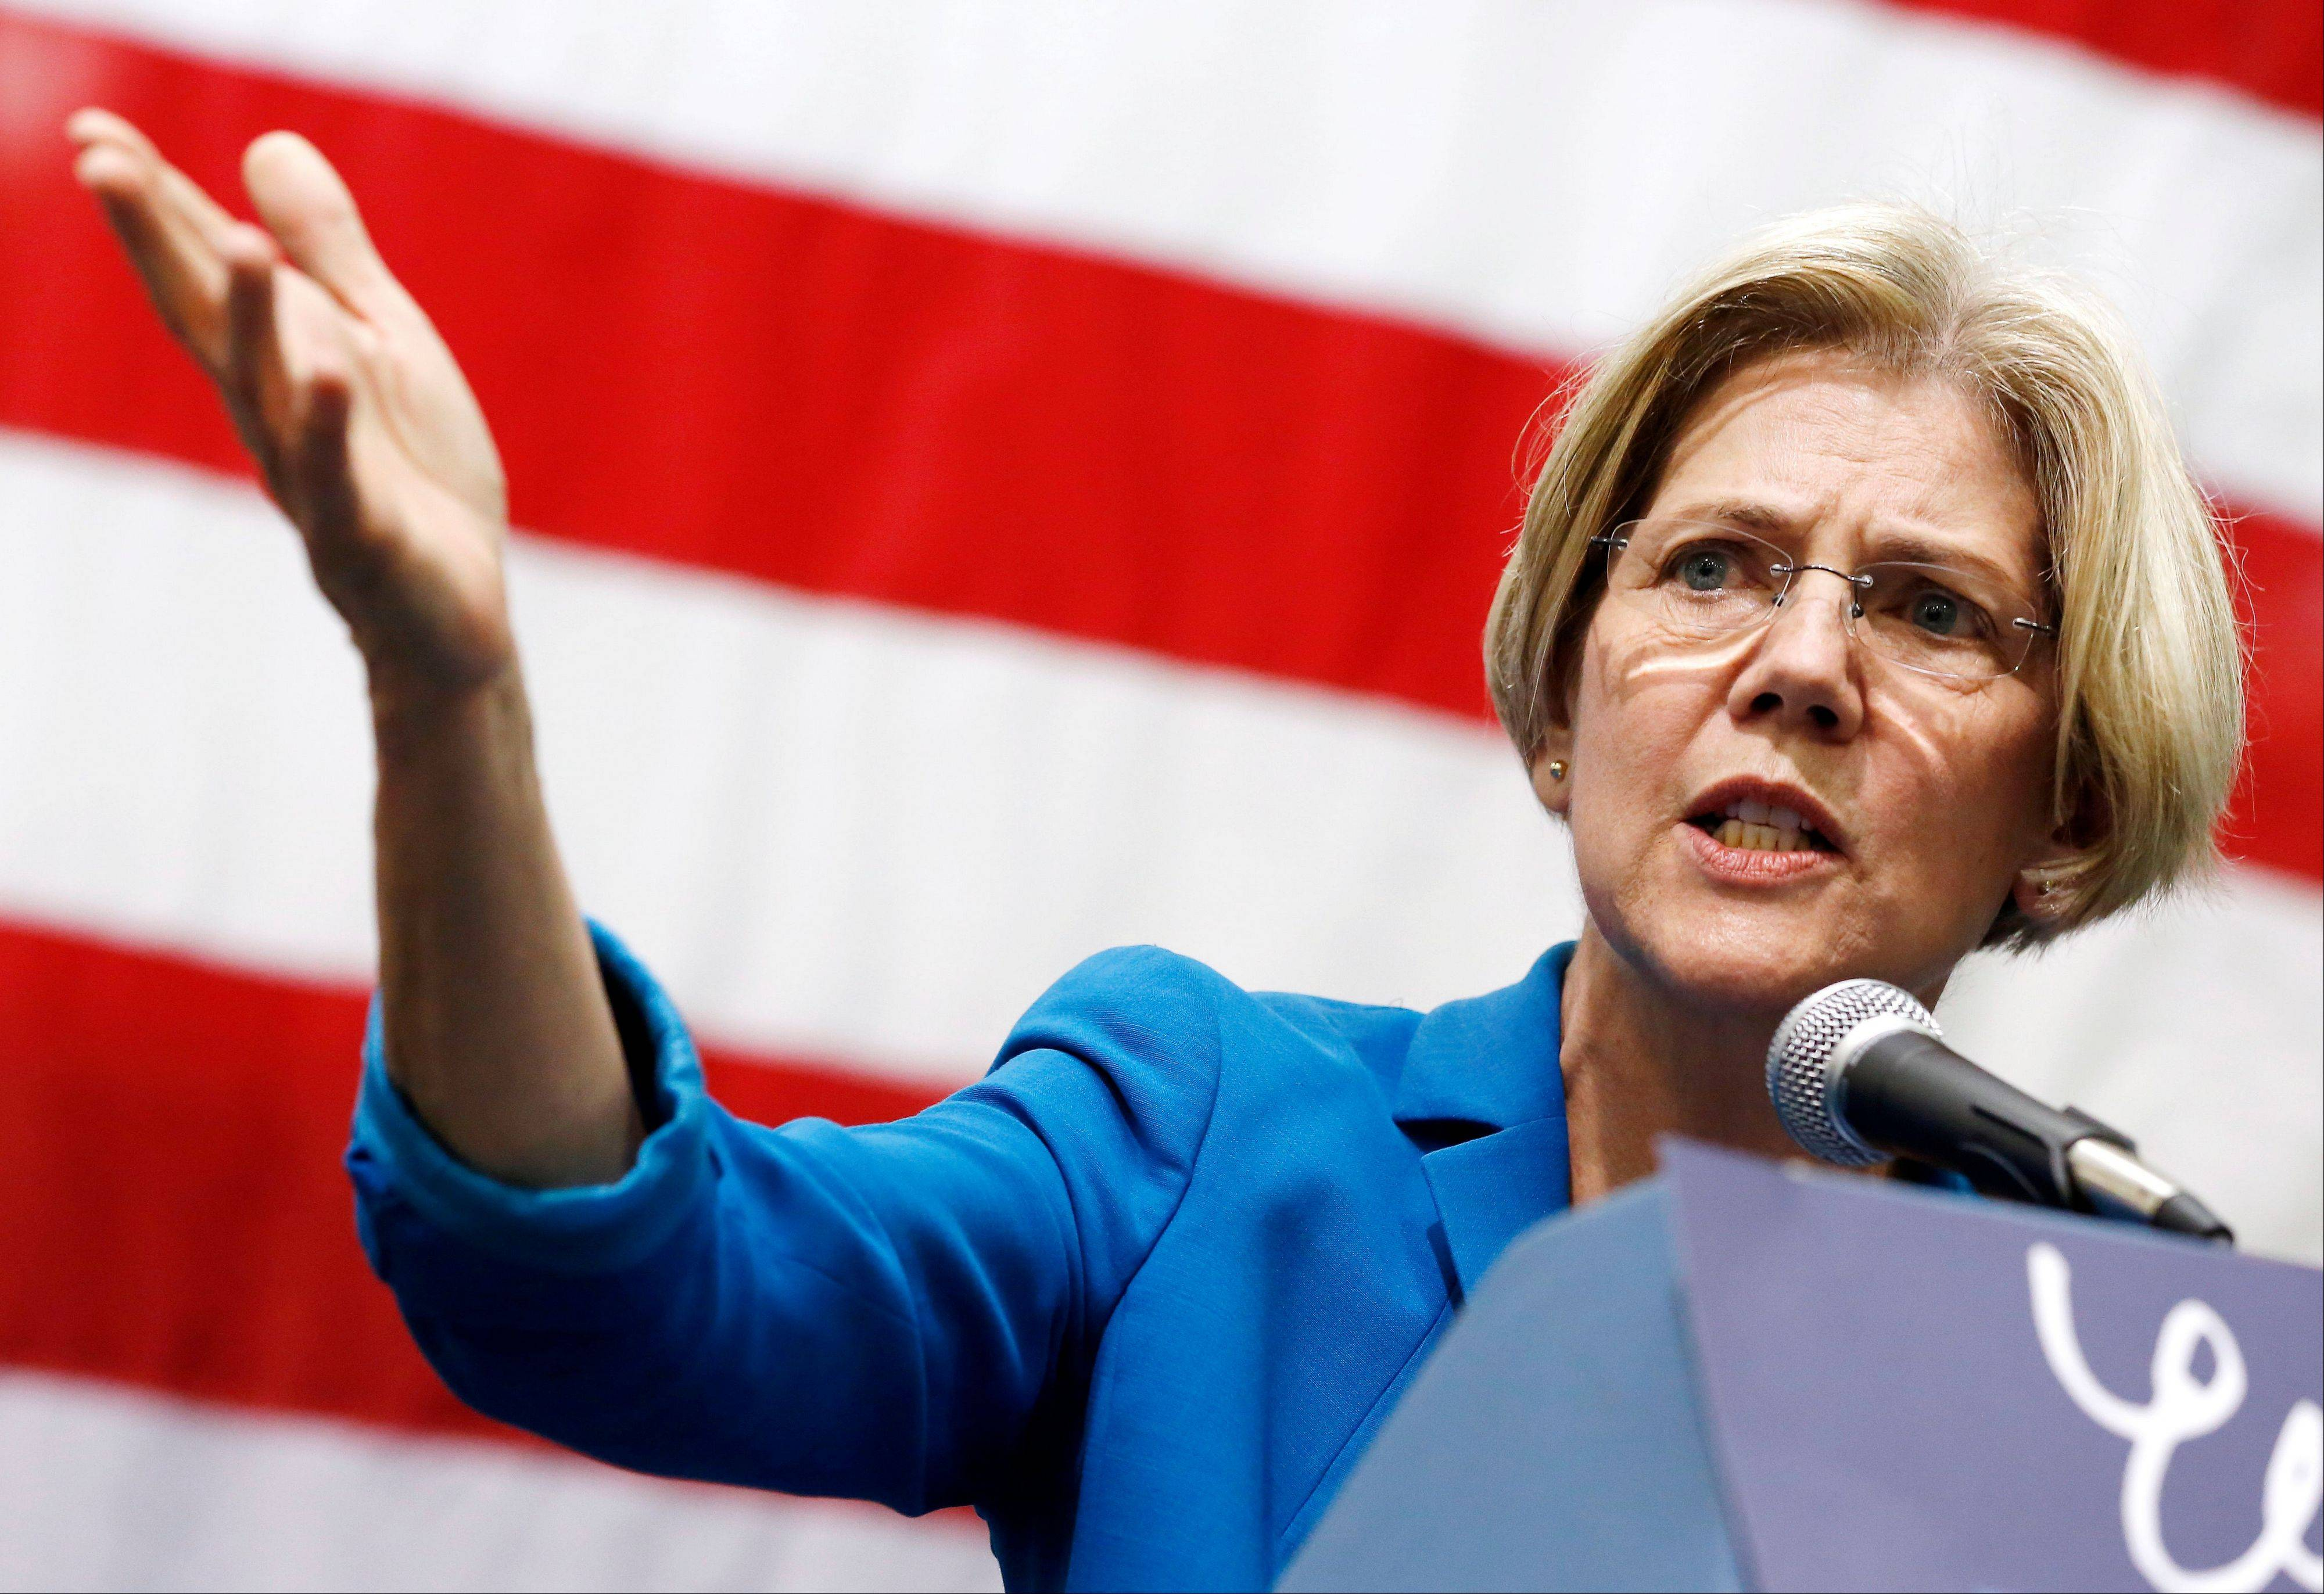 Democratic candidate Elizabeth Warren on Tuesday defeated incumbent Republican Sen. Scott Brown for a U.S. Senate seat from Massachusetts.